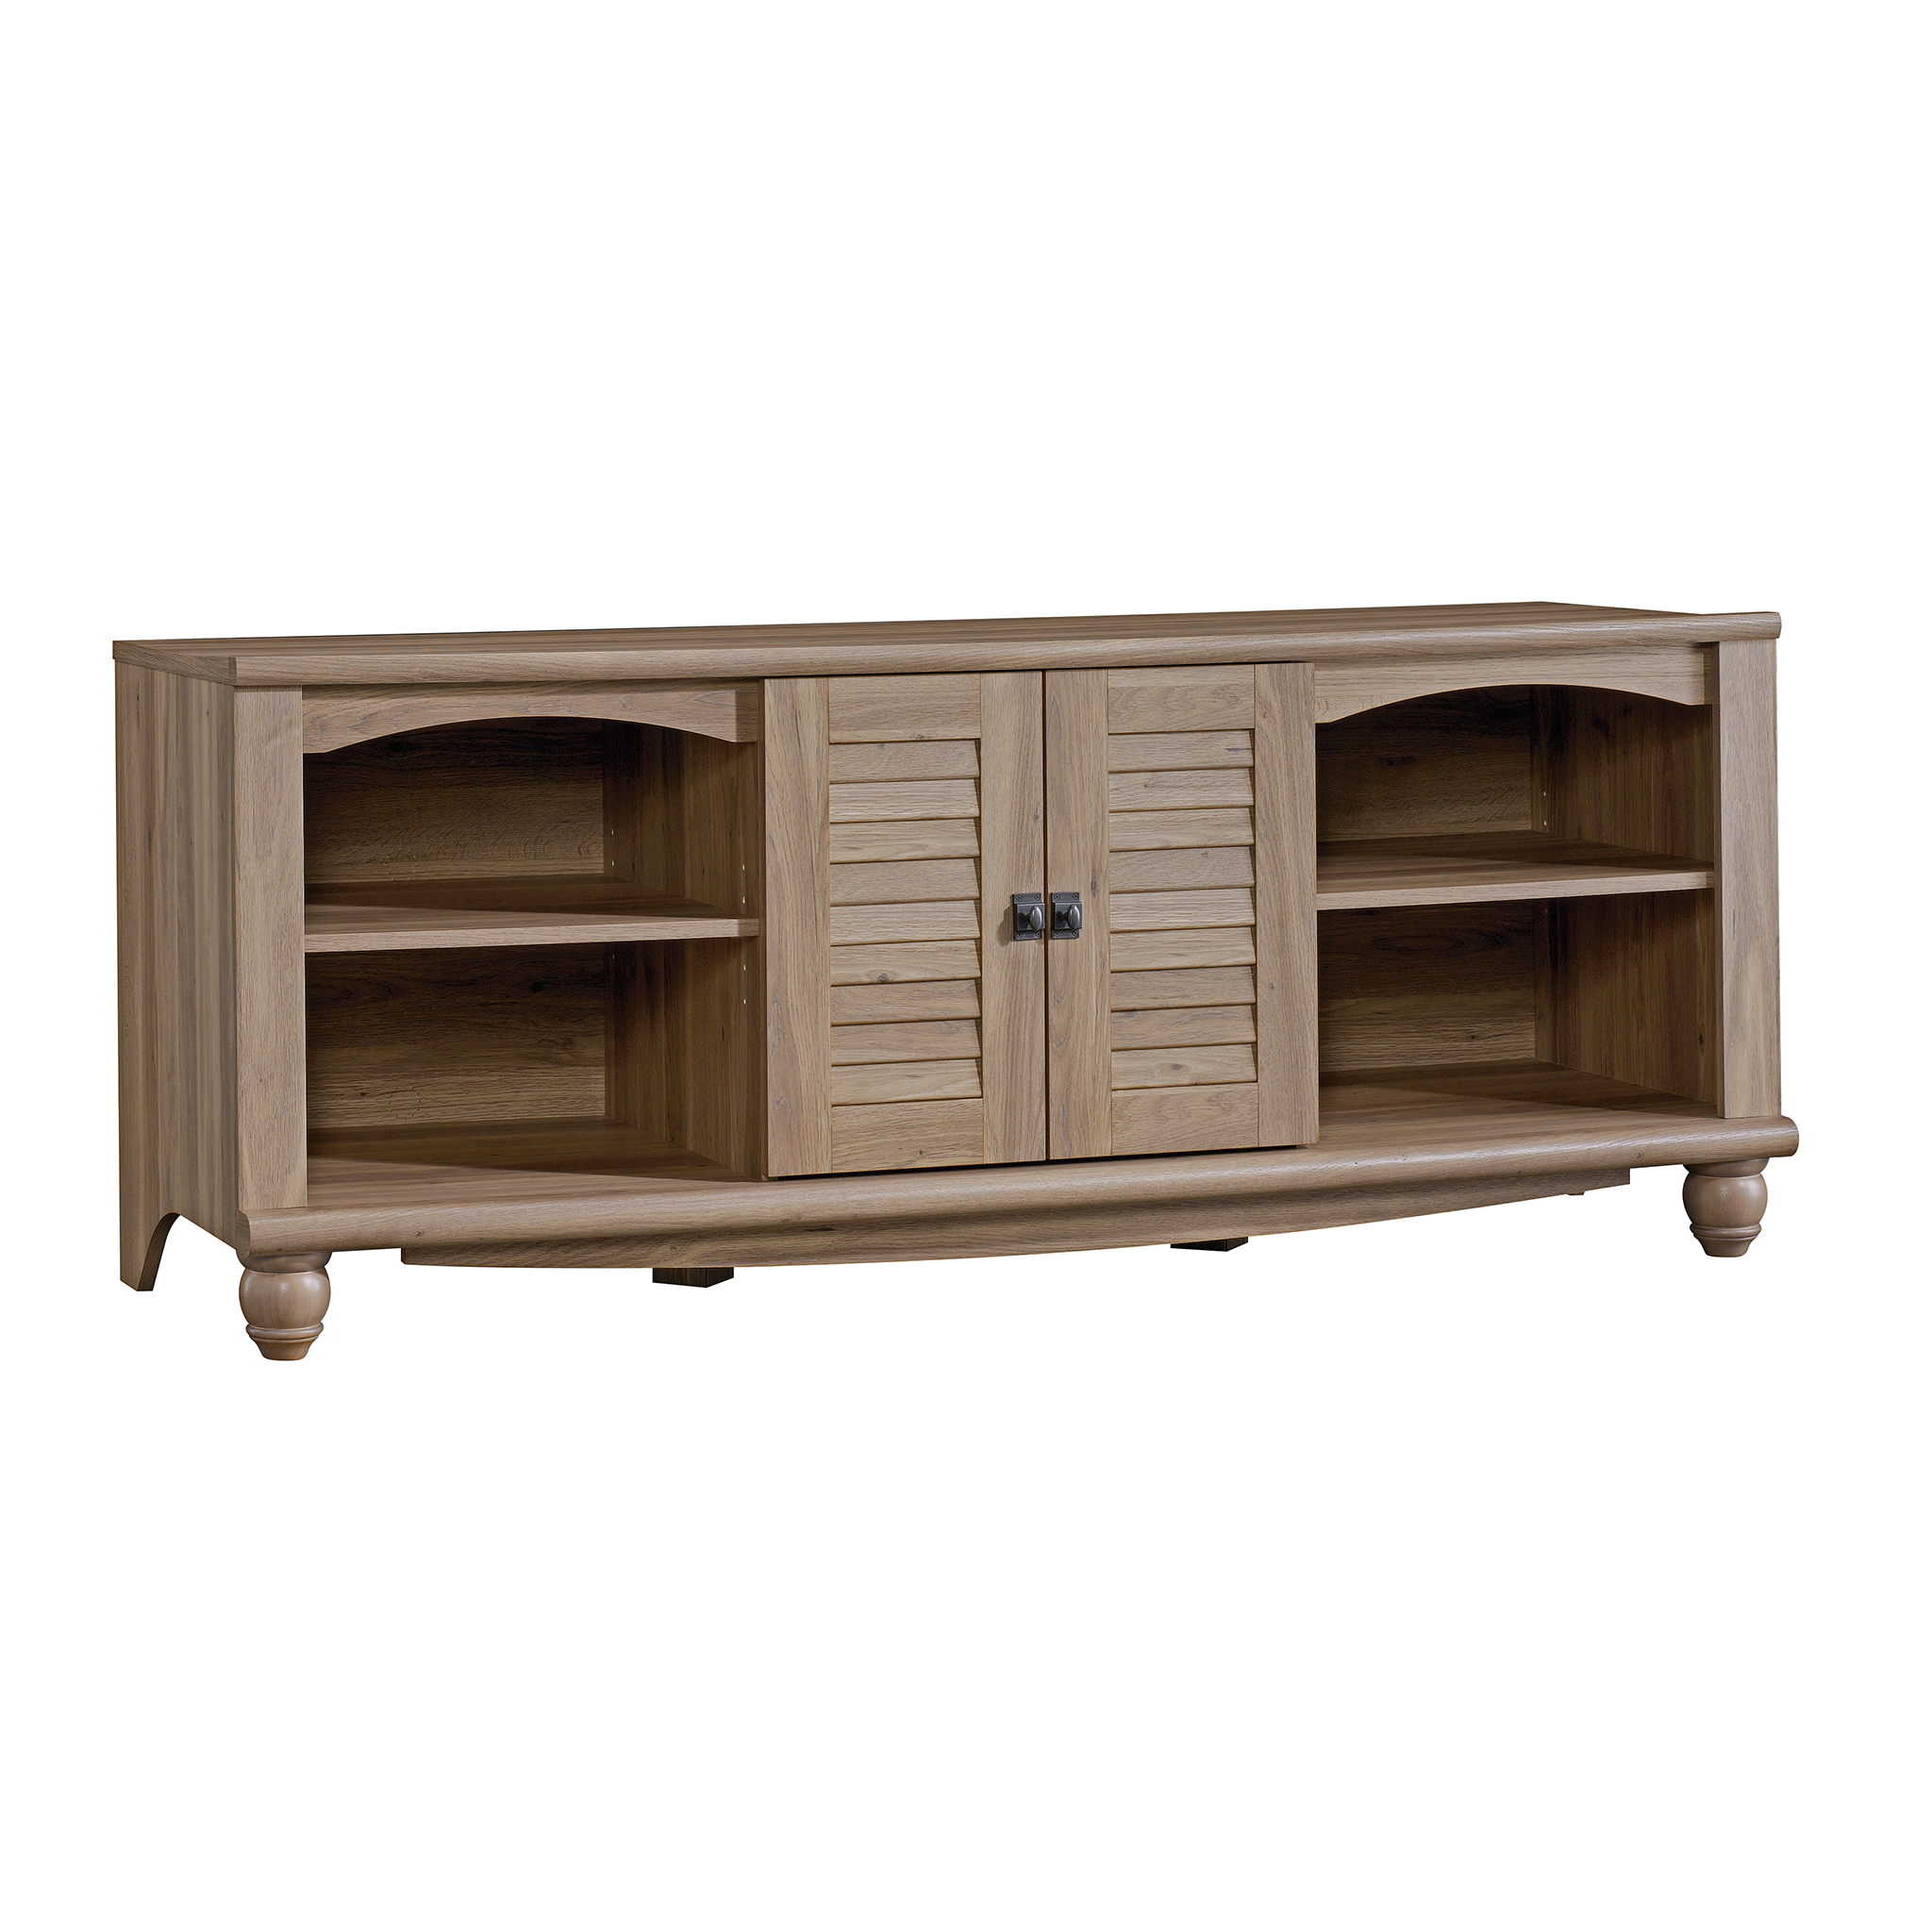 "Sauder Harbor View Entertainment Credenza for TVs up to 60"", Salt Oak Finish"